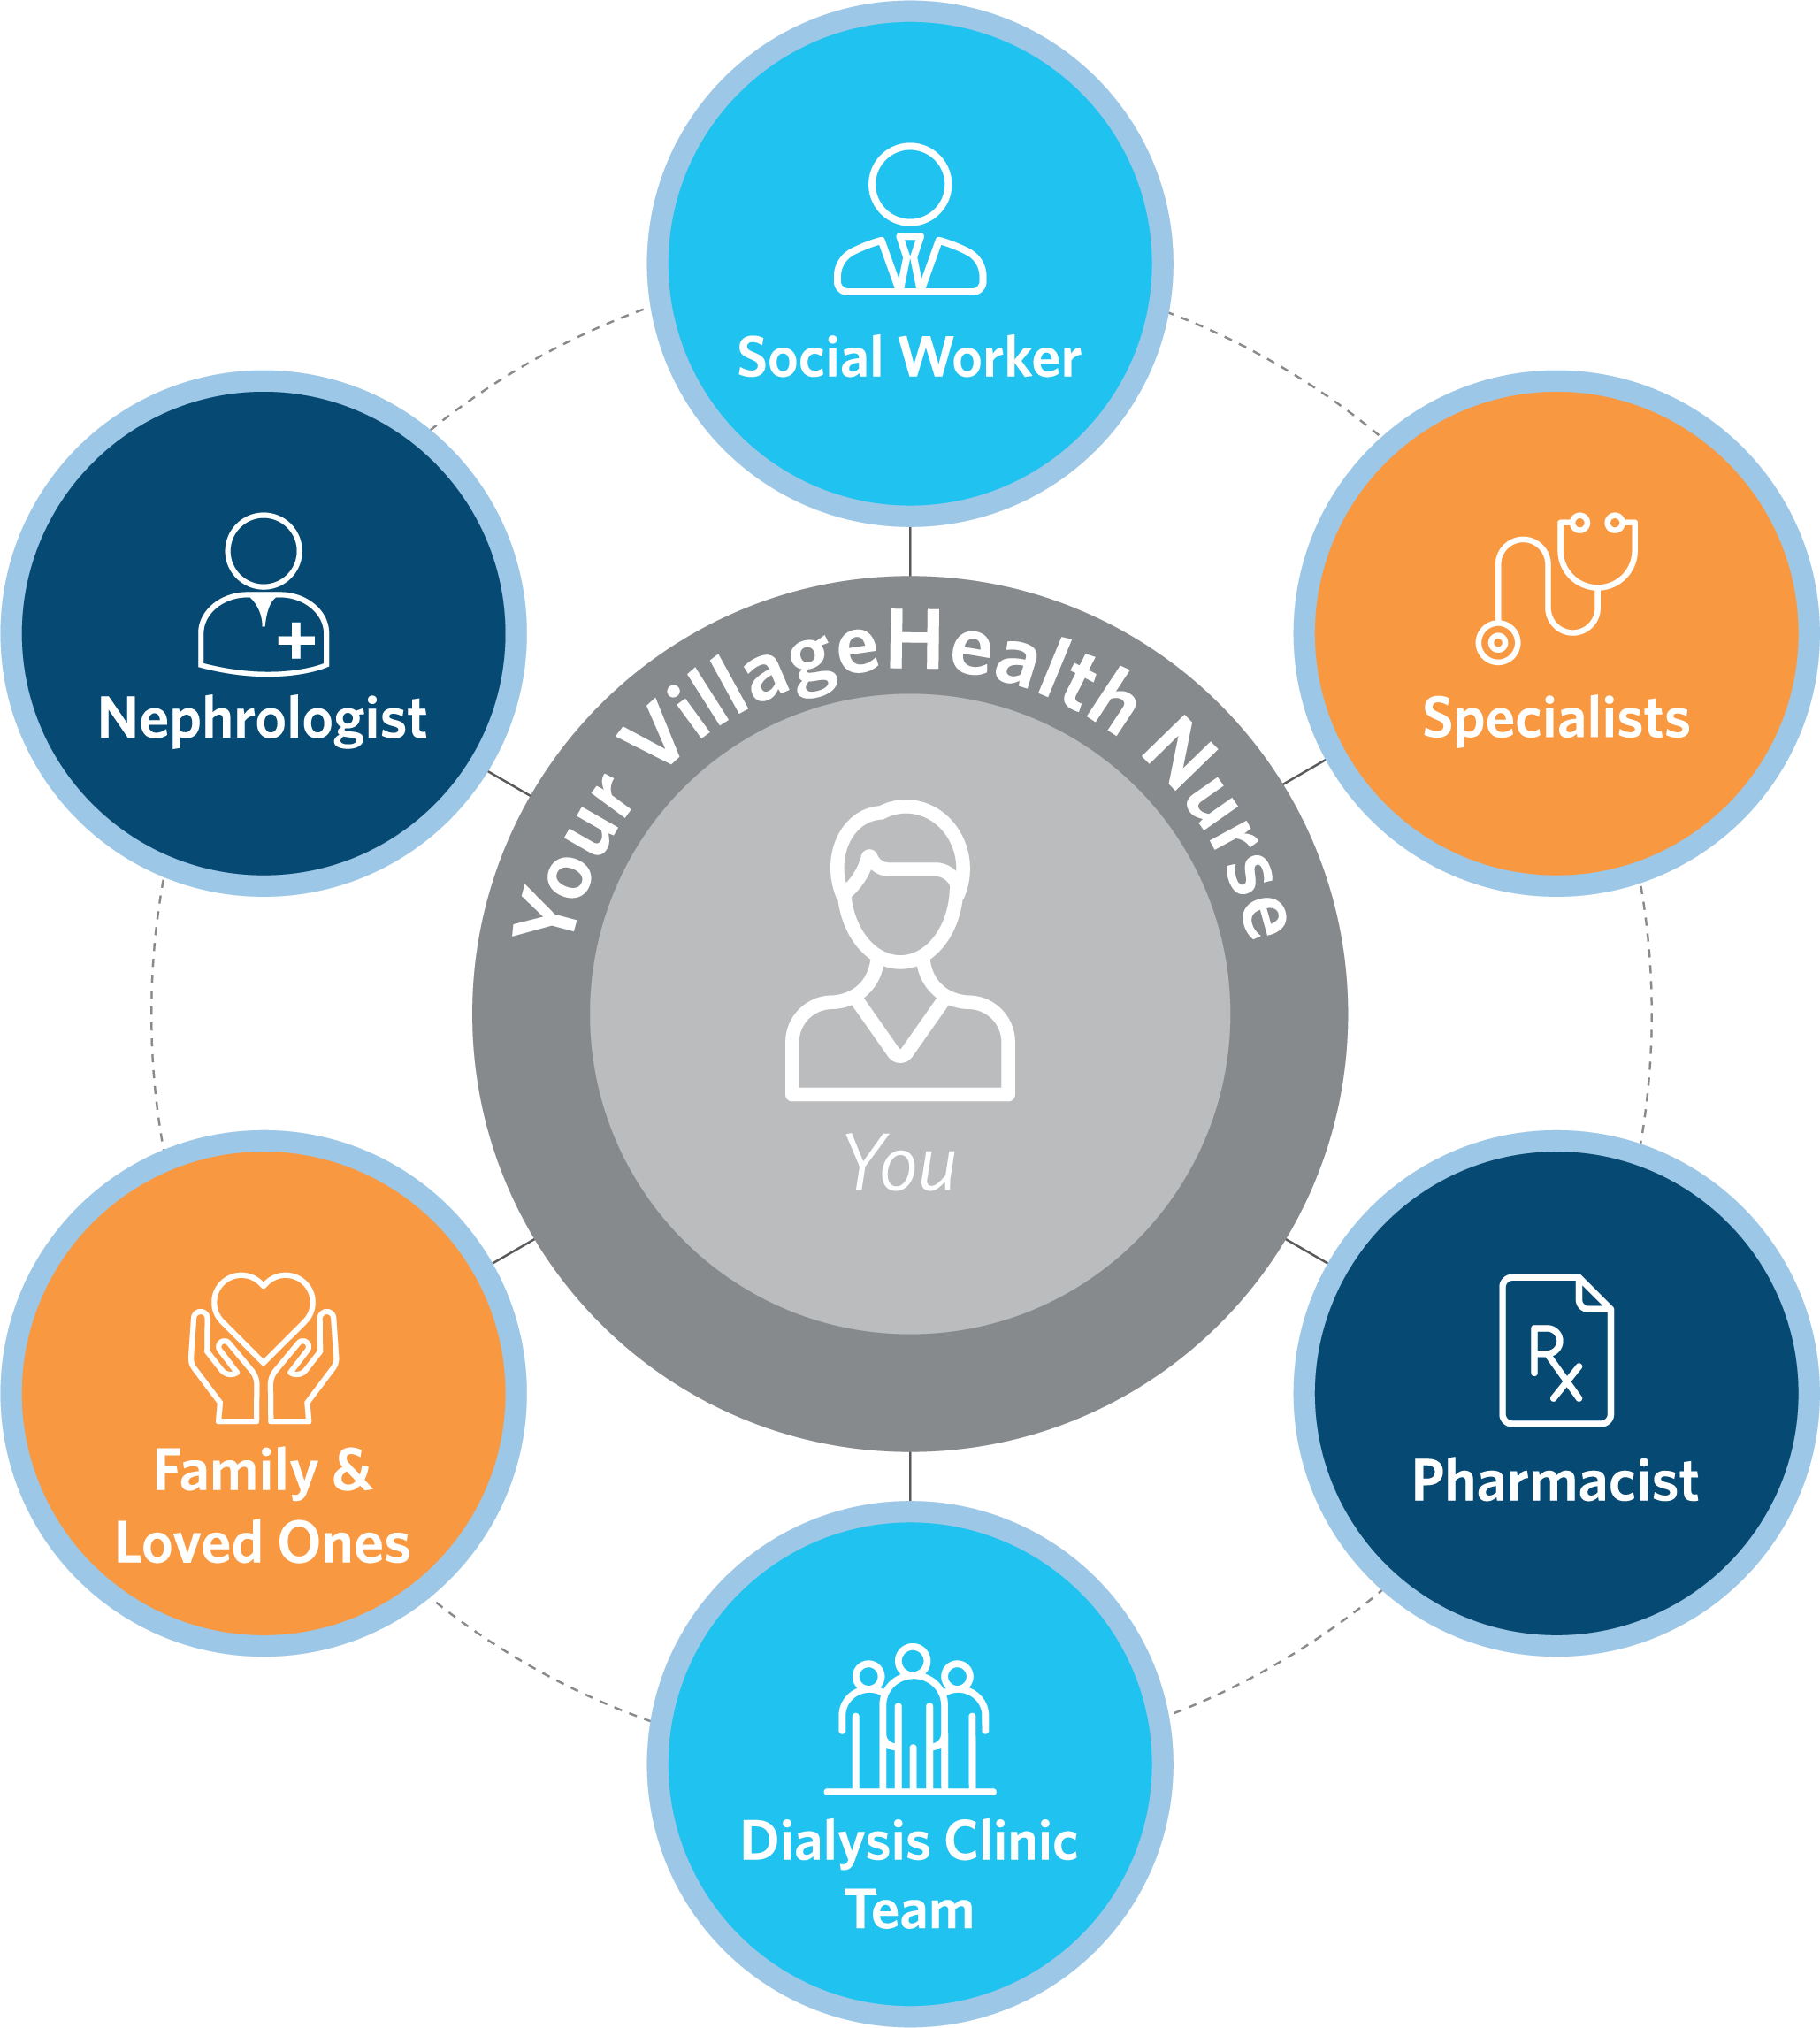 New Members Villagehealth A Scan Health Plan Product